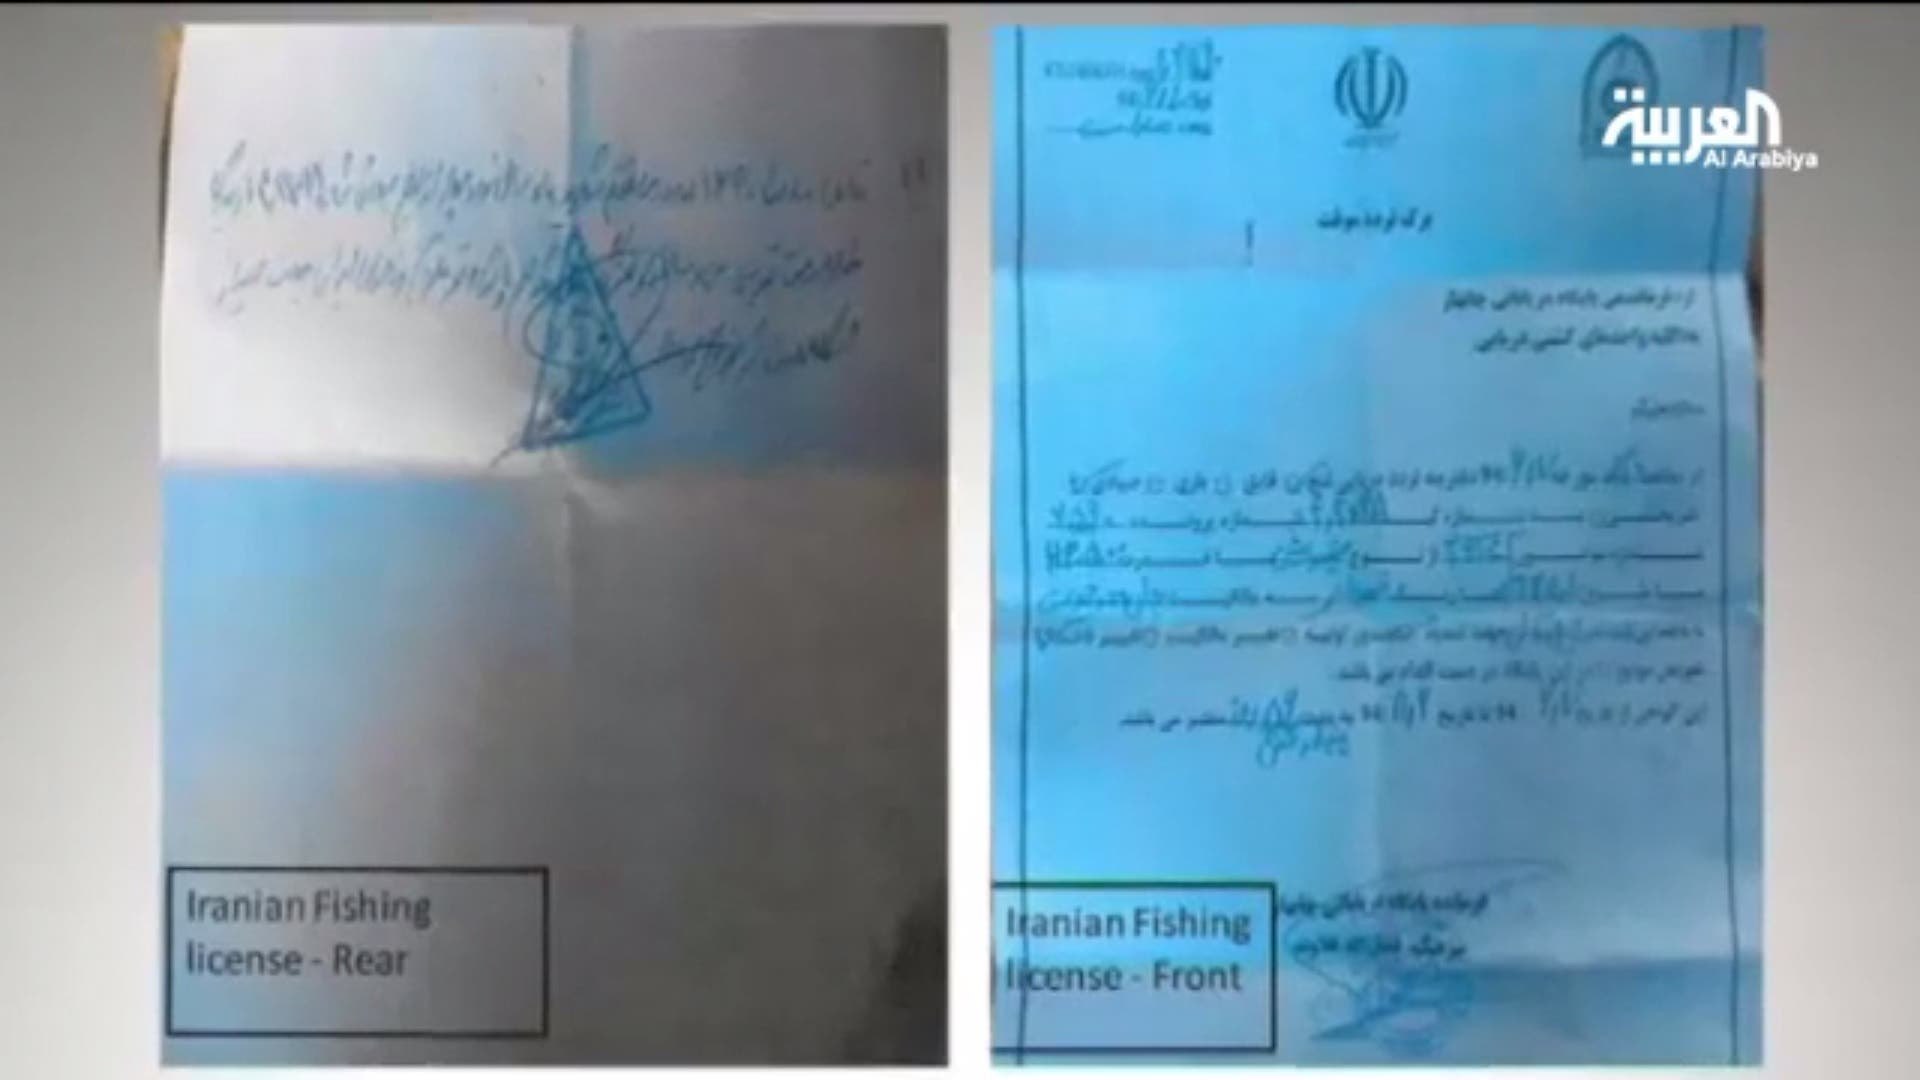 Documents sezied from the boat showed that the vessel was registered under an Iranian citizen's name. (Al Arabiya)